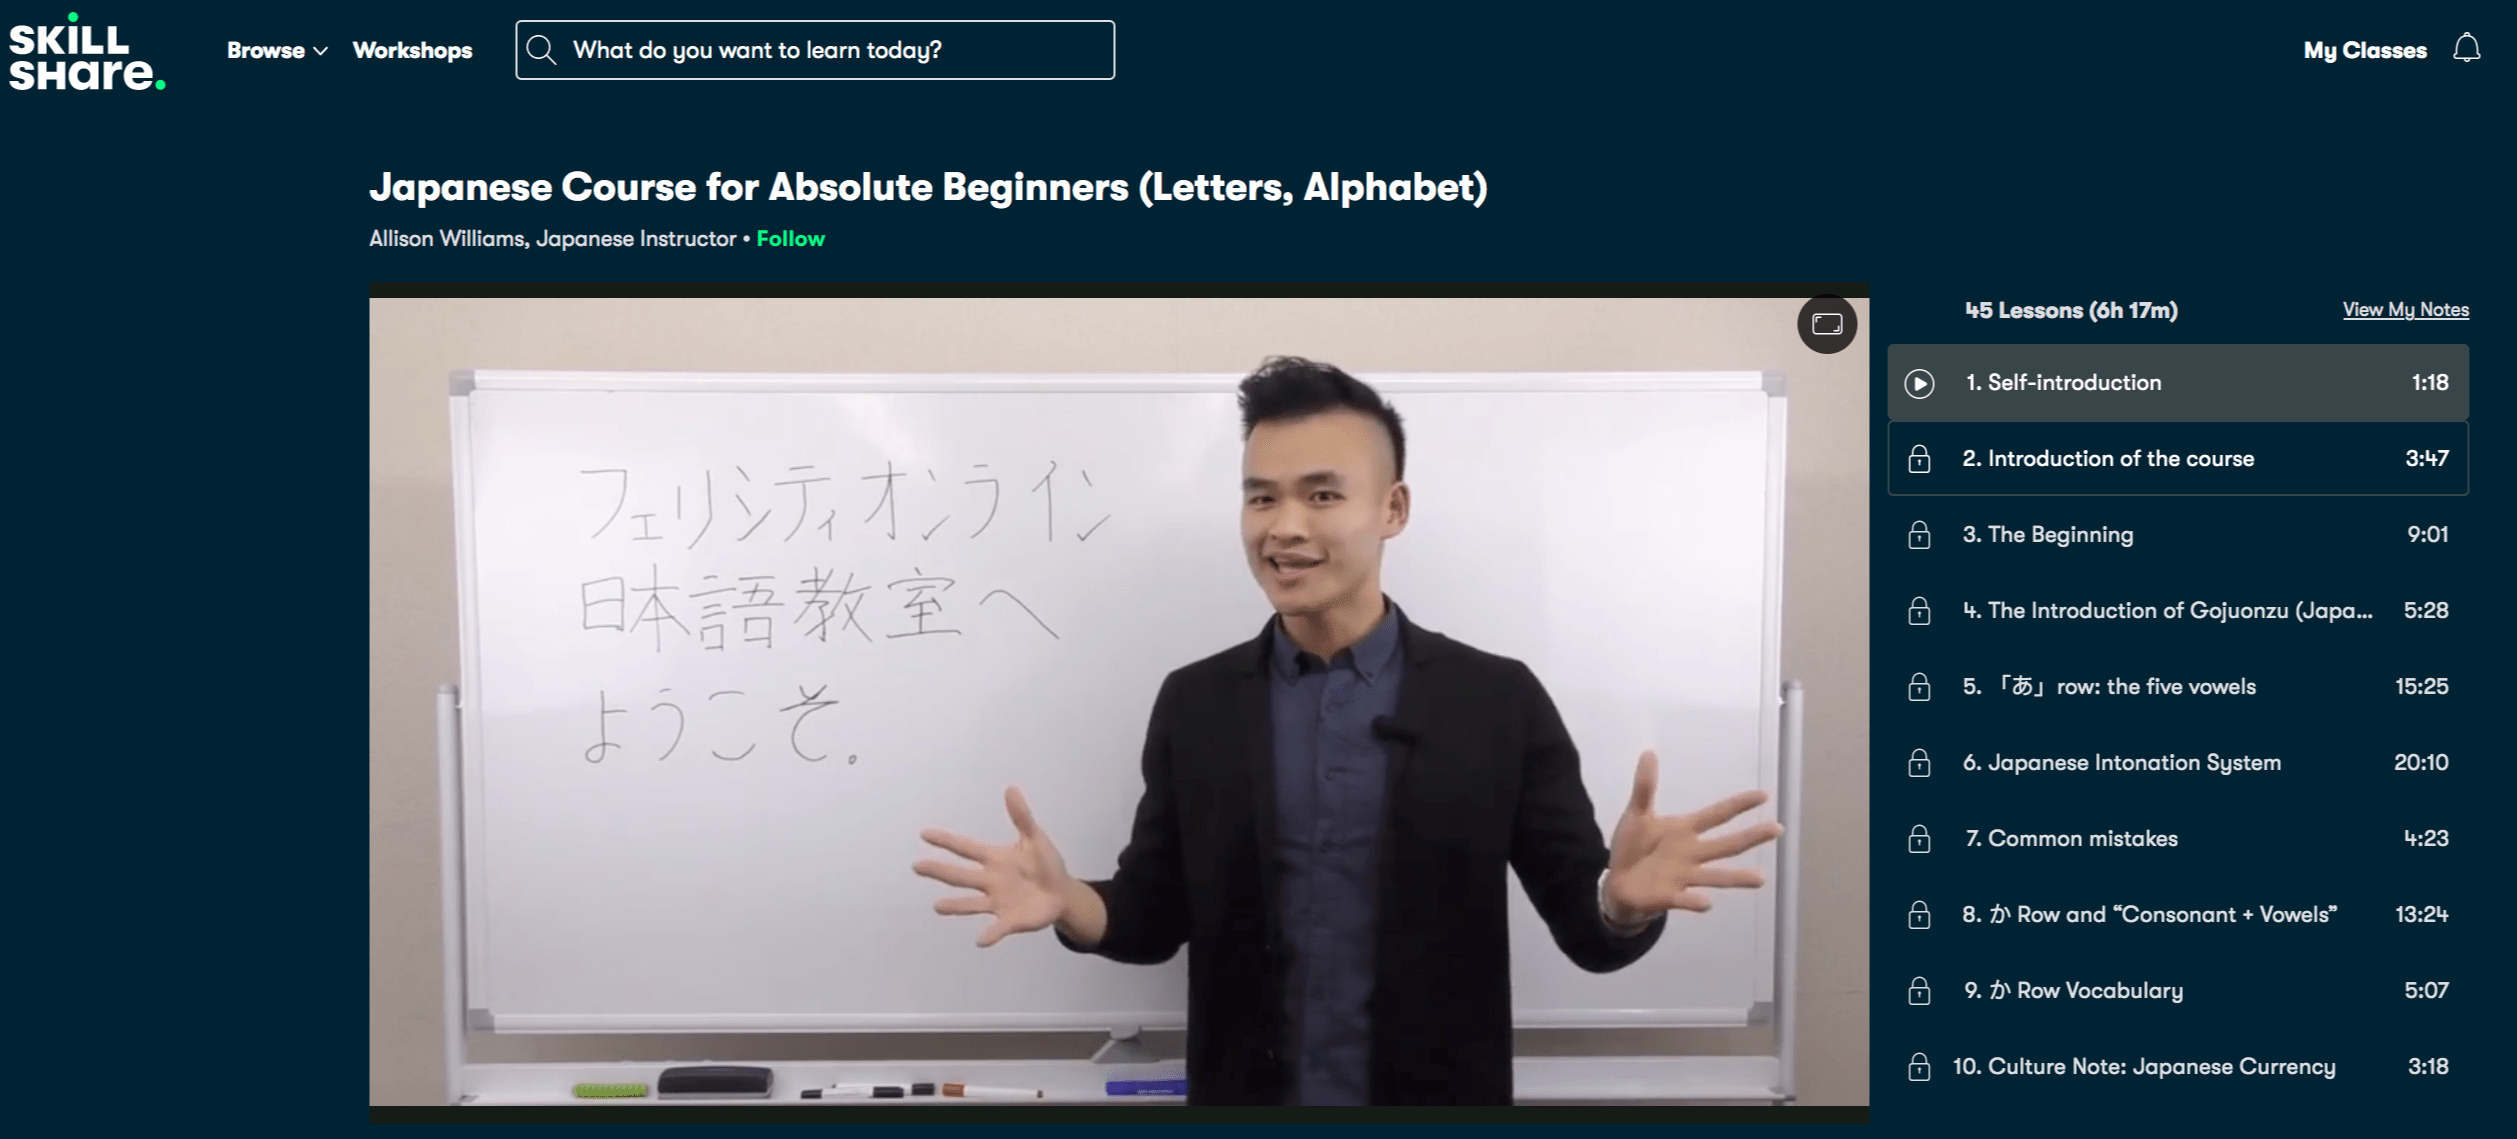 Japanese-Course-for-Absolute-Beginners-Letters-Alphabet-Allison-Williams-Skillshare